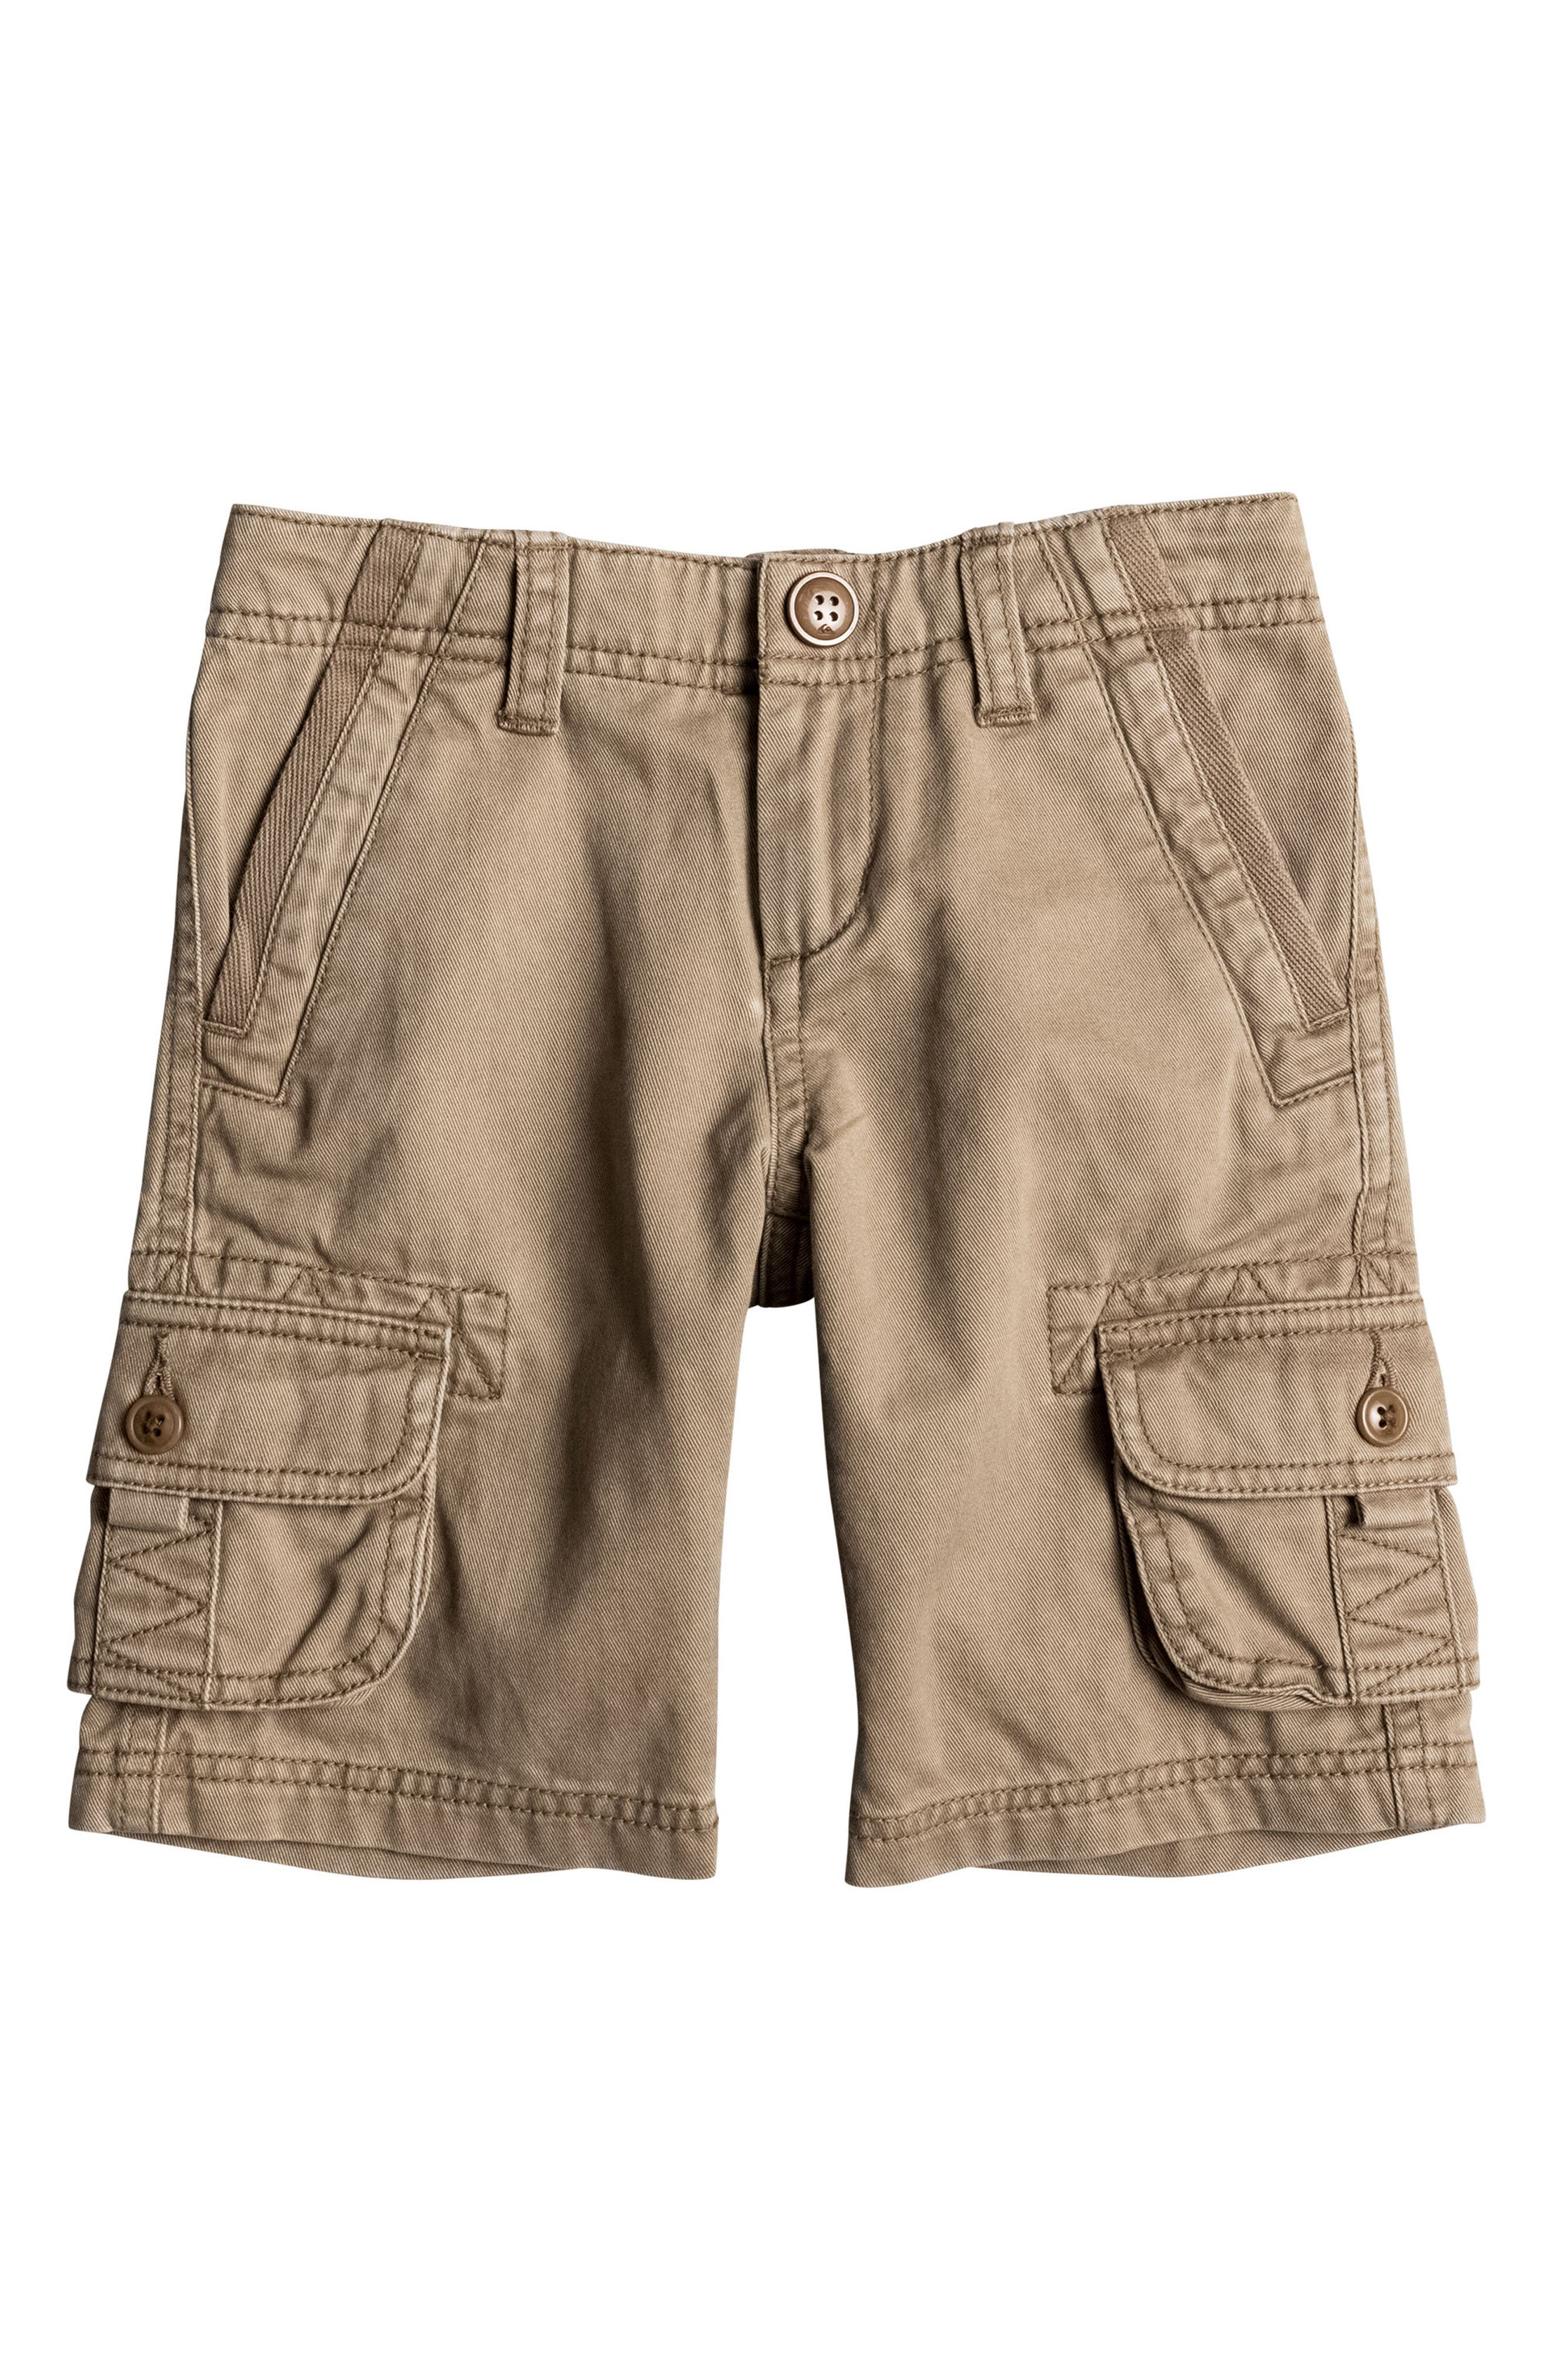 Alternate Image 1 Selected - Quiksilver Everyday Deluxe Cargo Shorts (Toddler Boys & Little Boys)